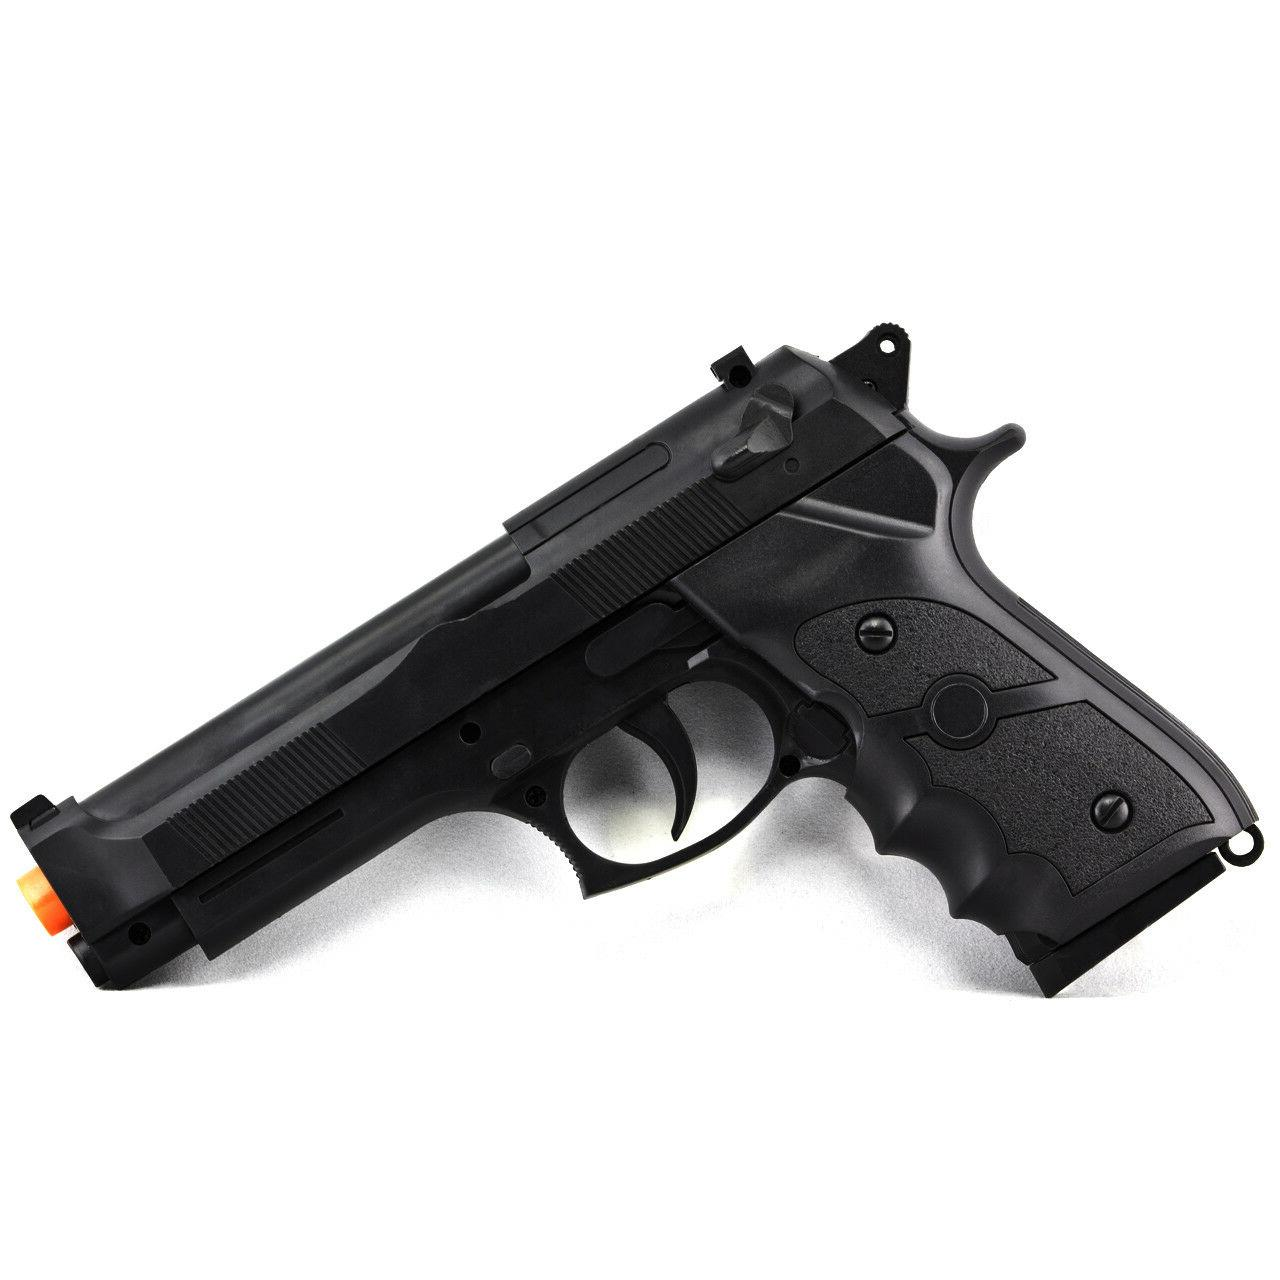 UKARMS BERETTA SIZE AIRSOFT w/ 6mm BBs